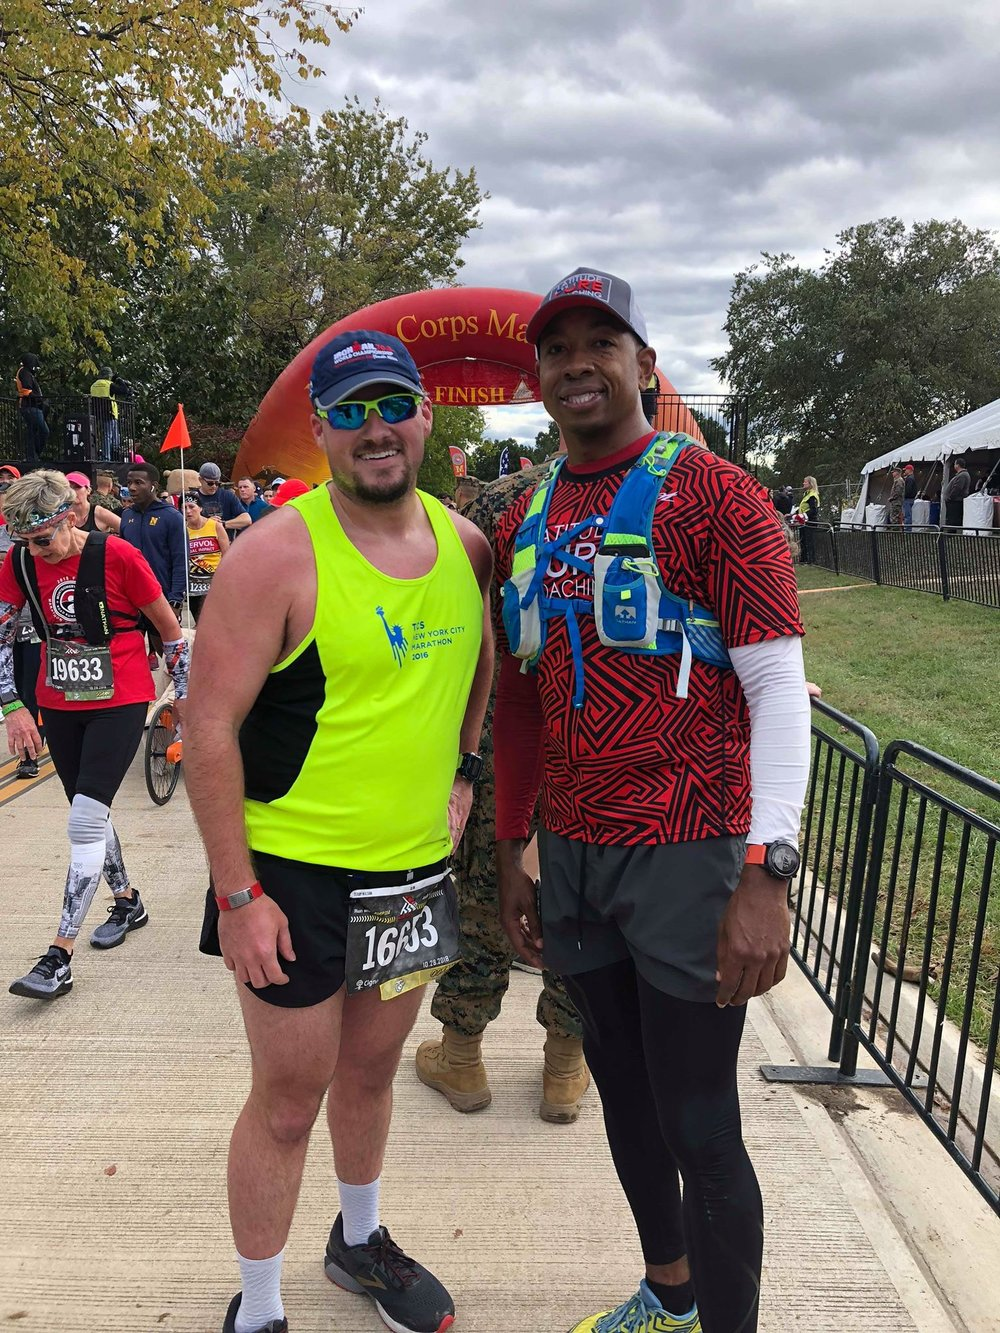 Coach_Terry_Wilson_Pursuit_of_The_Perfect_Race_Marine_Corps_Marathon_2018_6.jpg